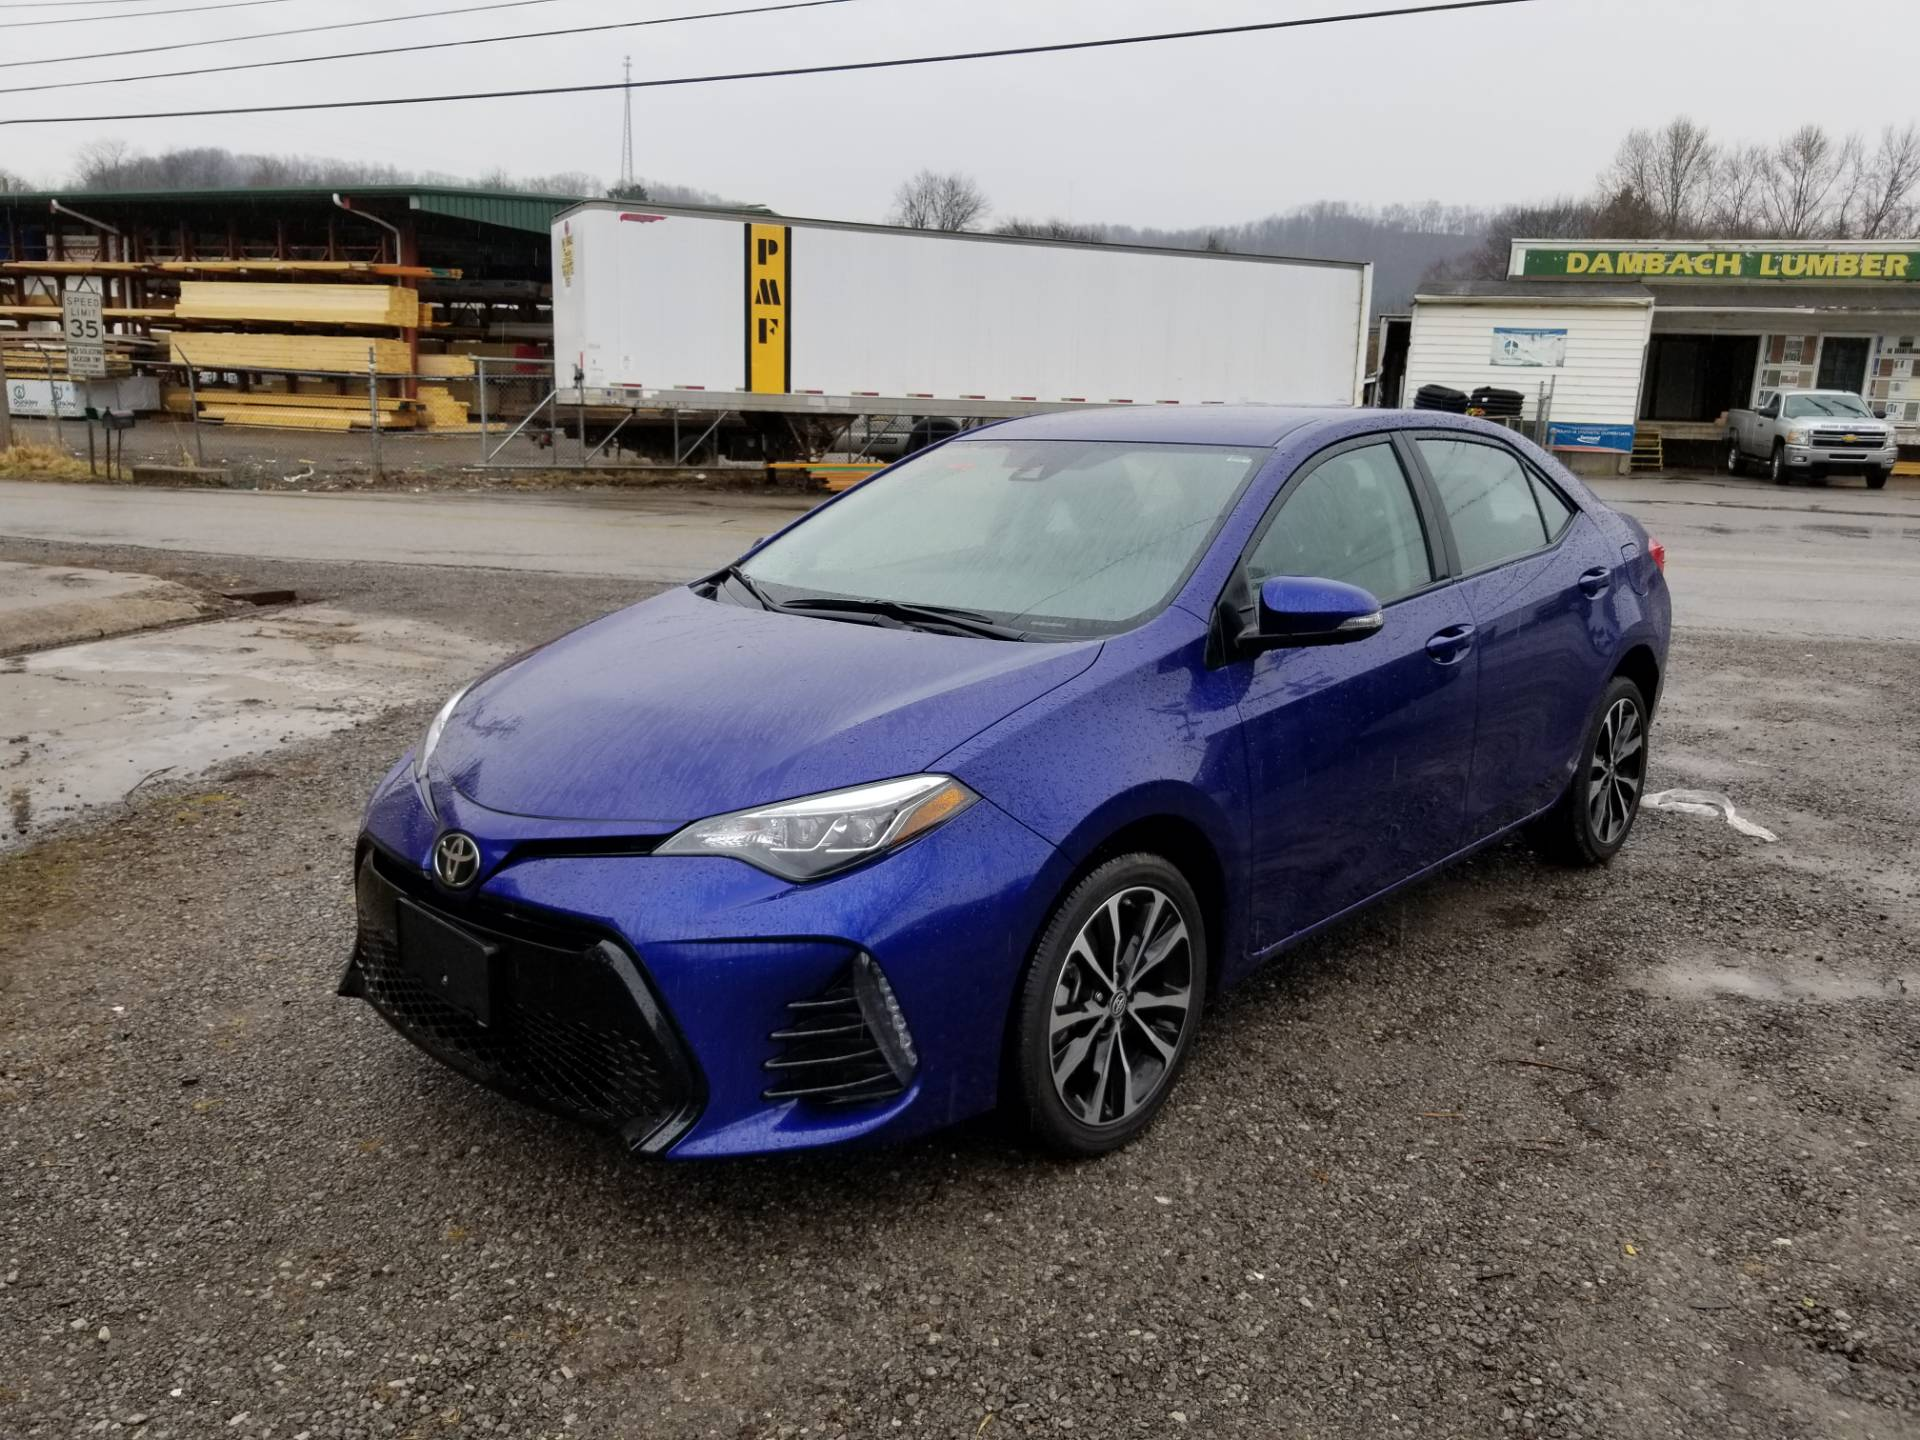 2017 Toyota Corrola SE only 400 miles in Harmony, Pennsylvania - Photo 7